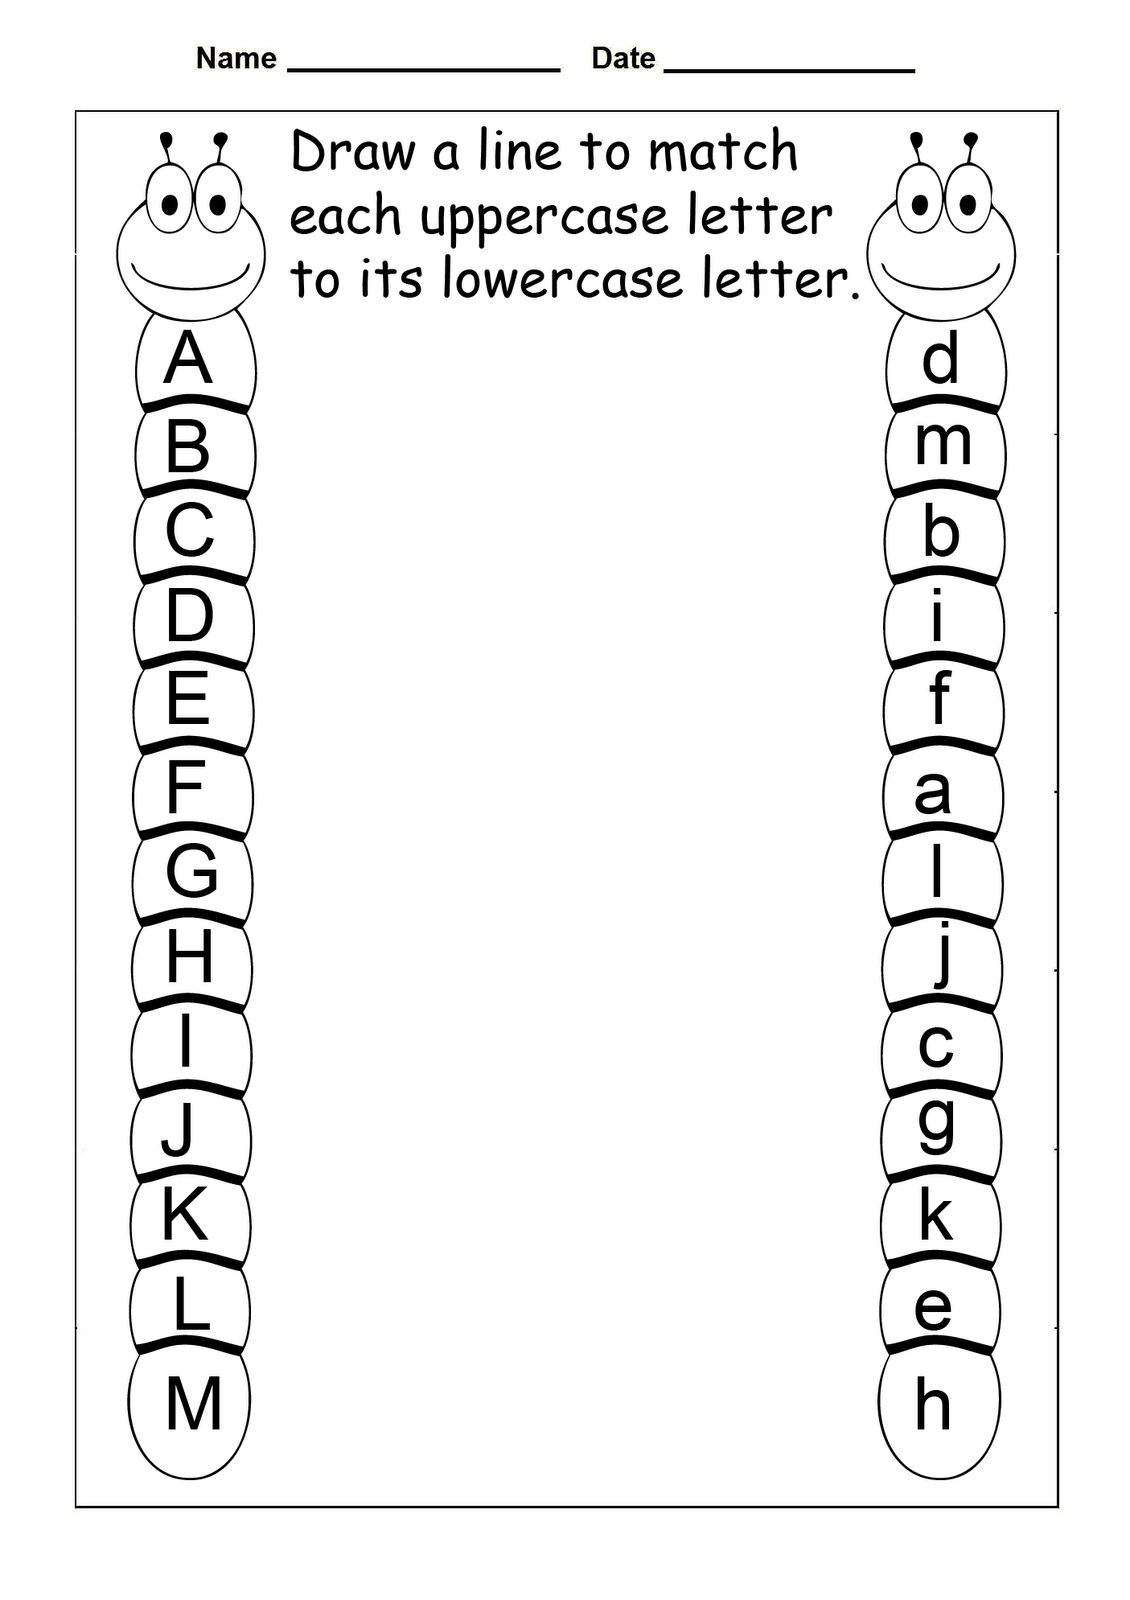 Preschool Worksheets / FREE Printable Worksheets - Worksheetfun